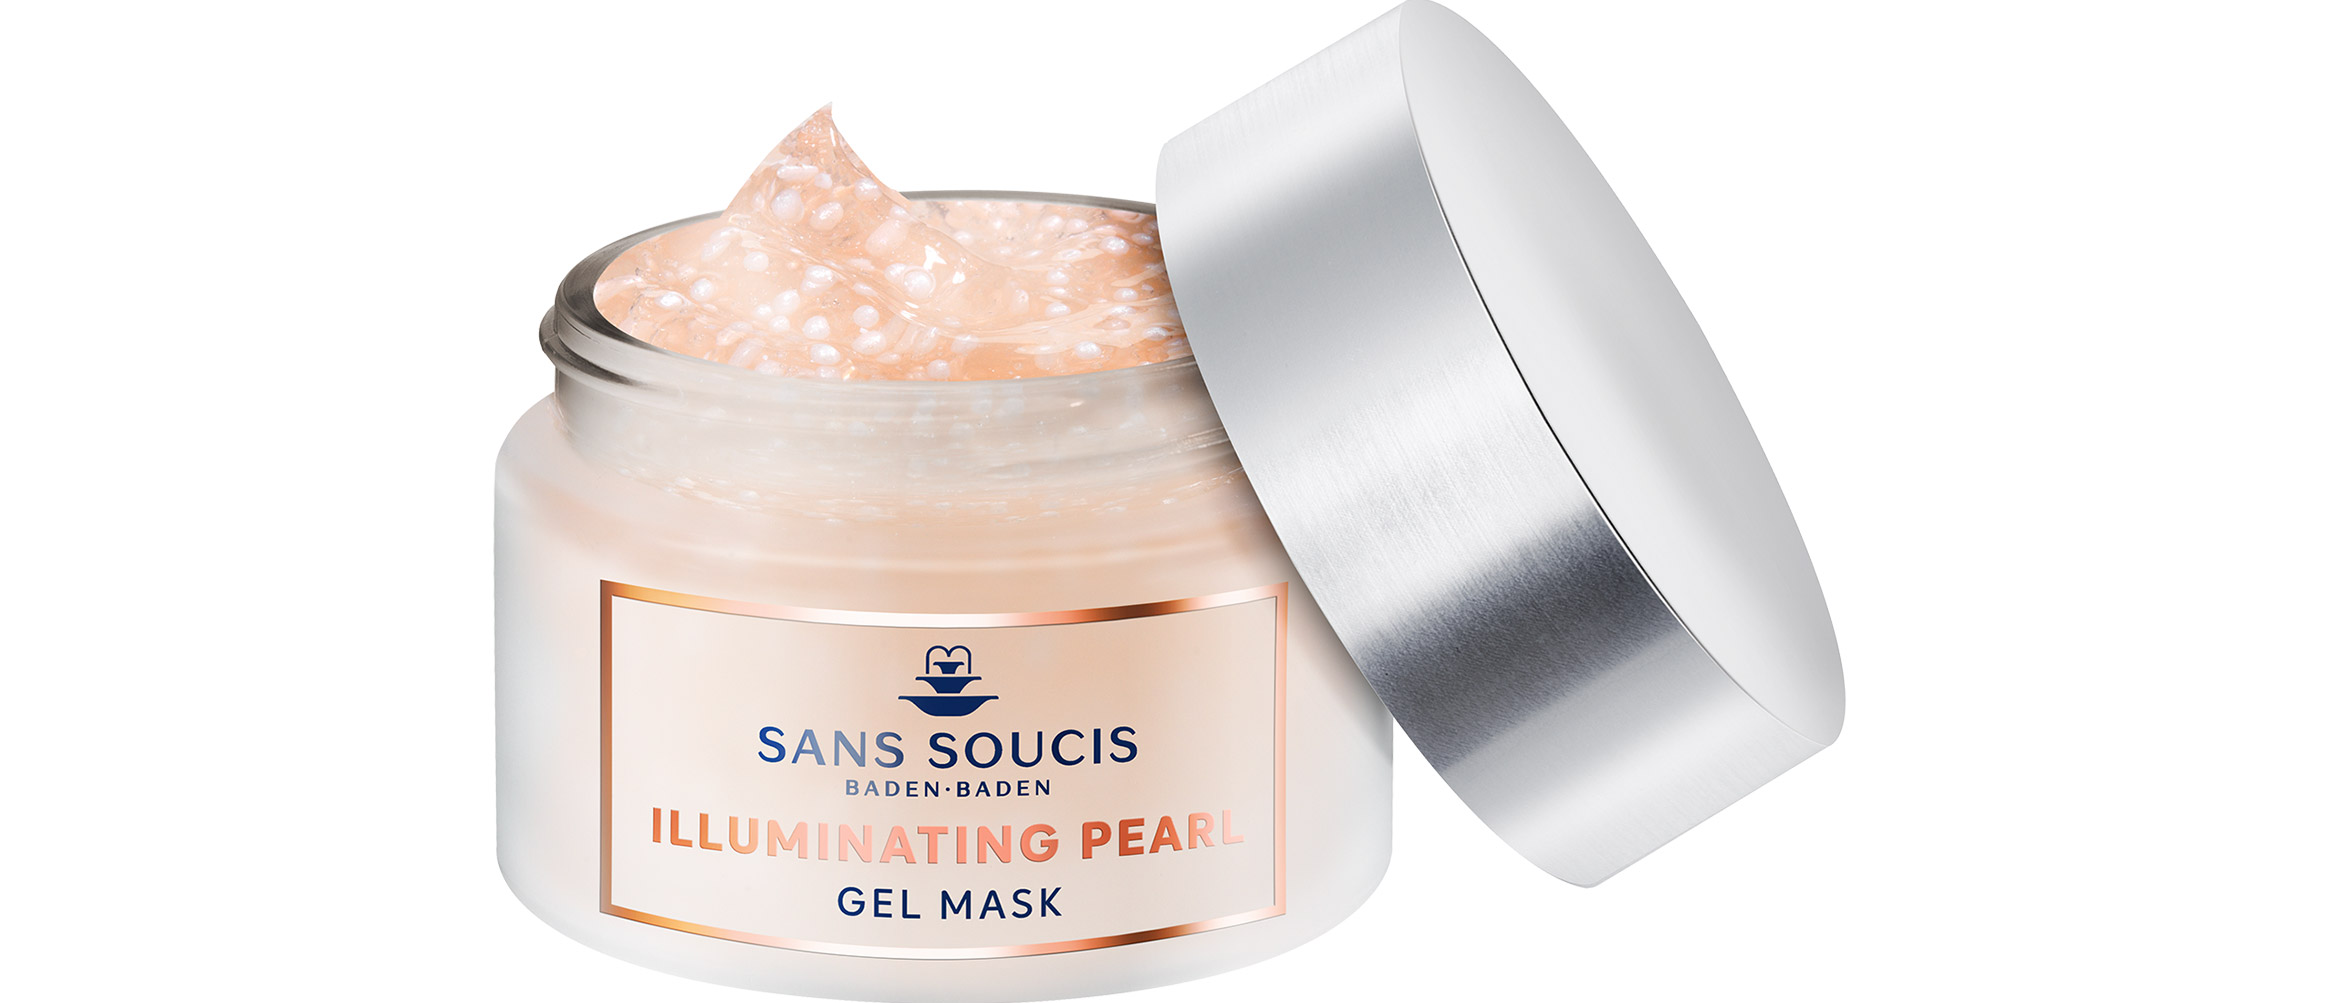 sans-soucis-illuminating-pearl-gel-mask